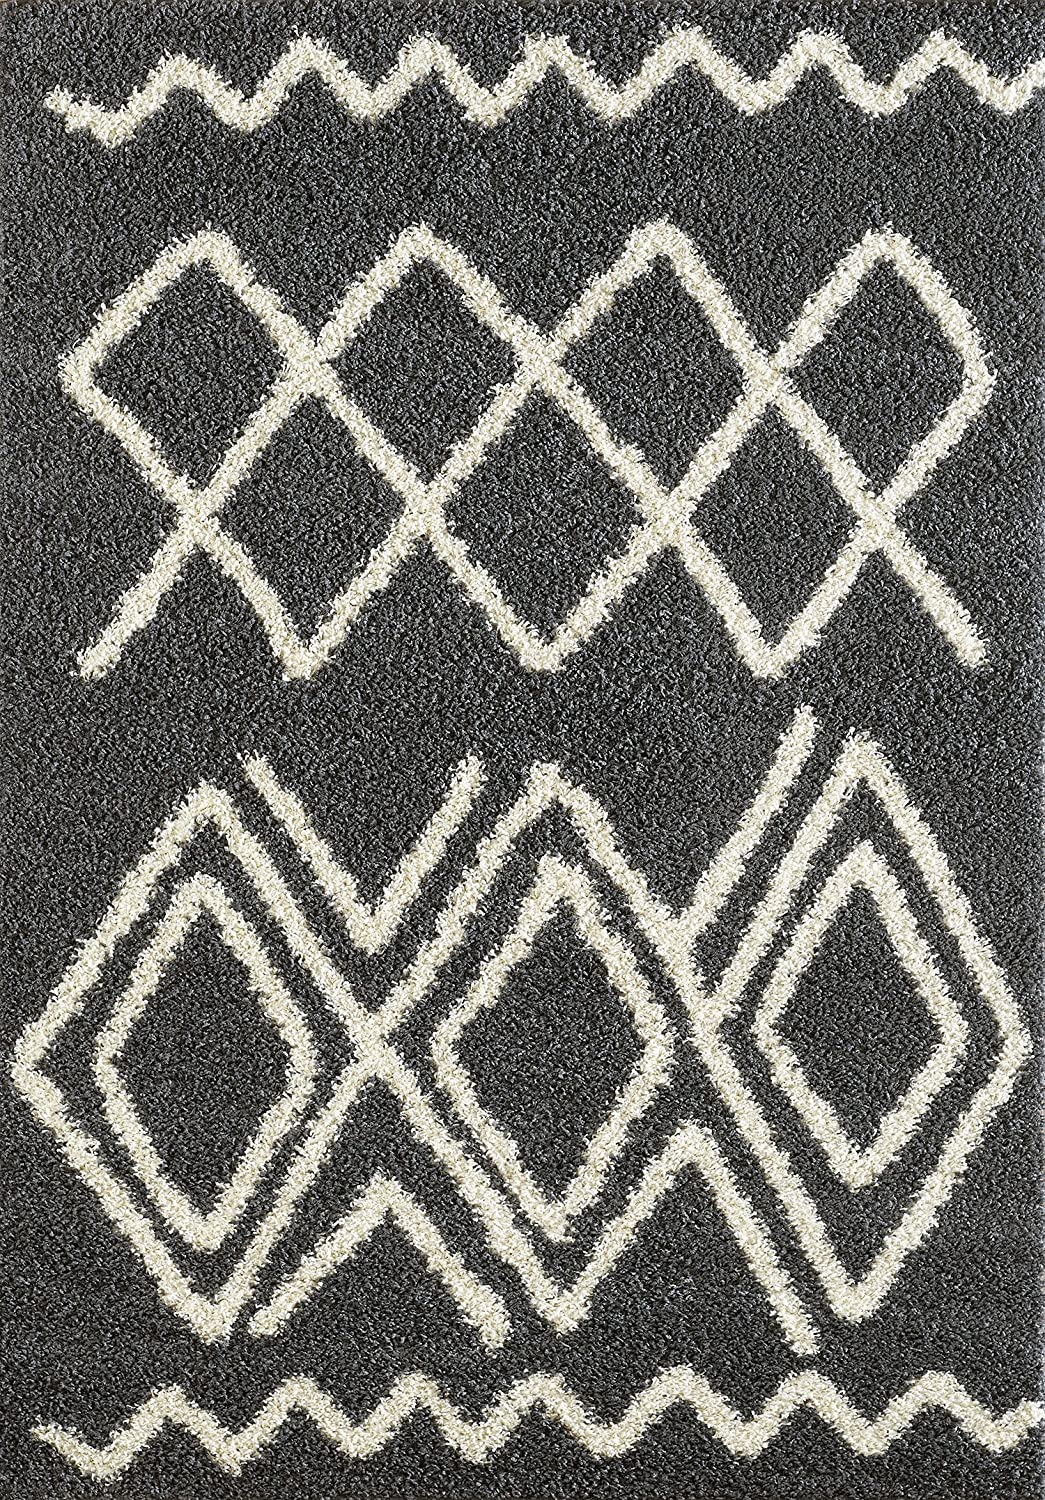 A2Z Rug ( 120x170 cm (4ft x 5ft8) Black 5530 ) Modern & Traditional Moroccan Shaggy Collection Contemporary Living & Bedroom Soft Shaggy Area Rug, Carpet Moro-5530-BK.IV-120170